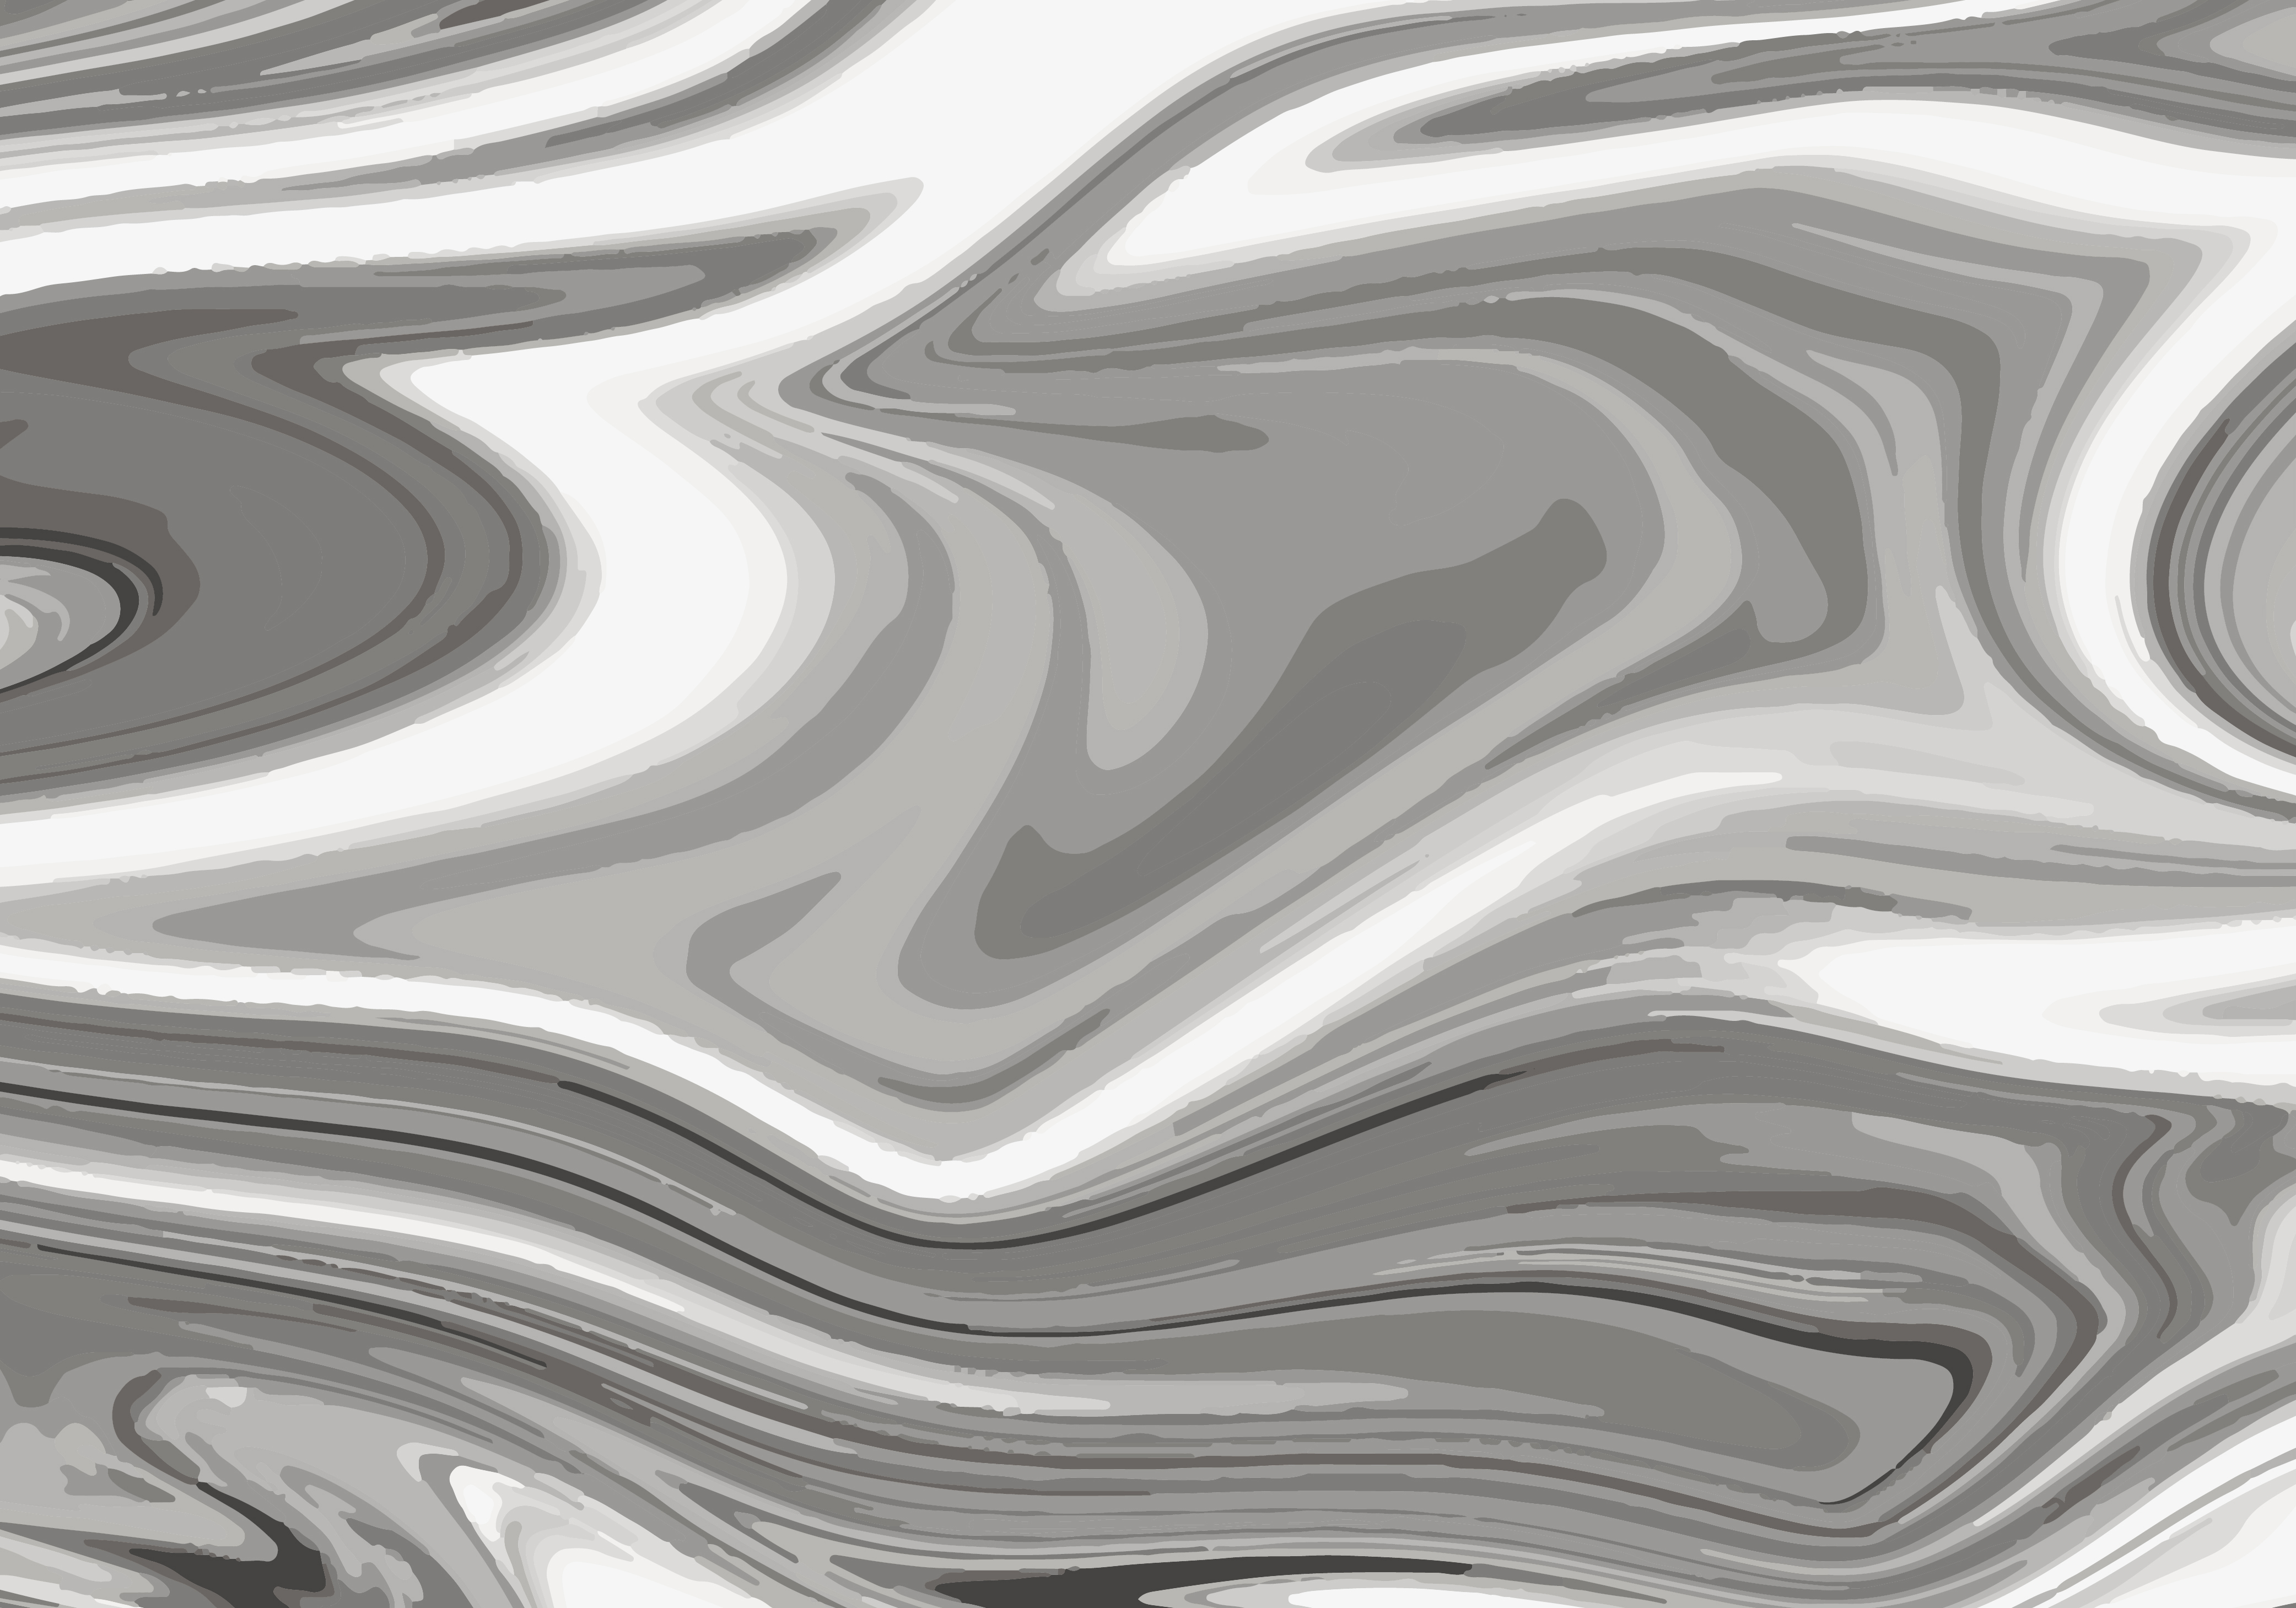 Gray Marble Illustration Download Free Vectors Clipart